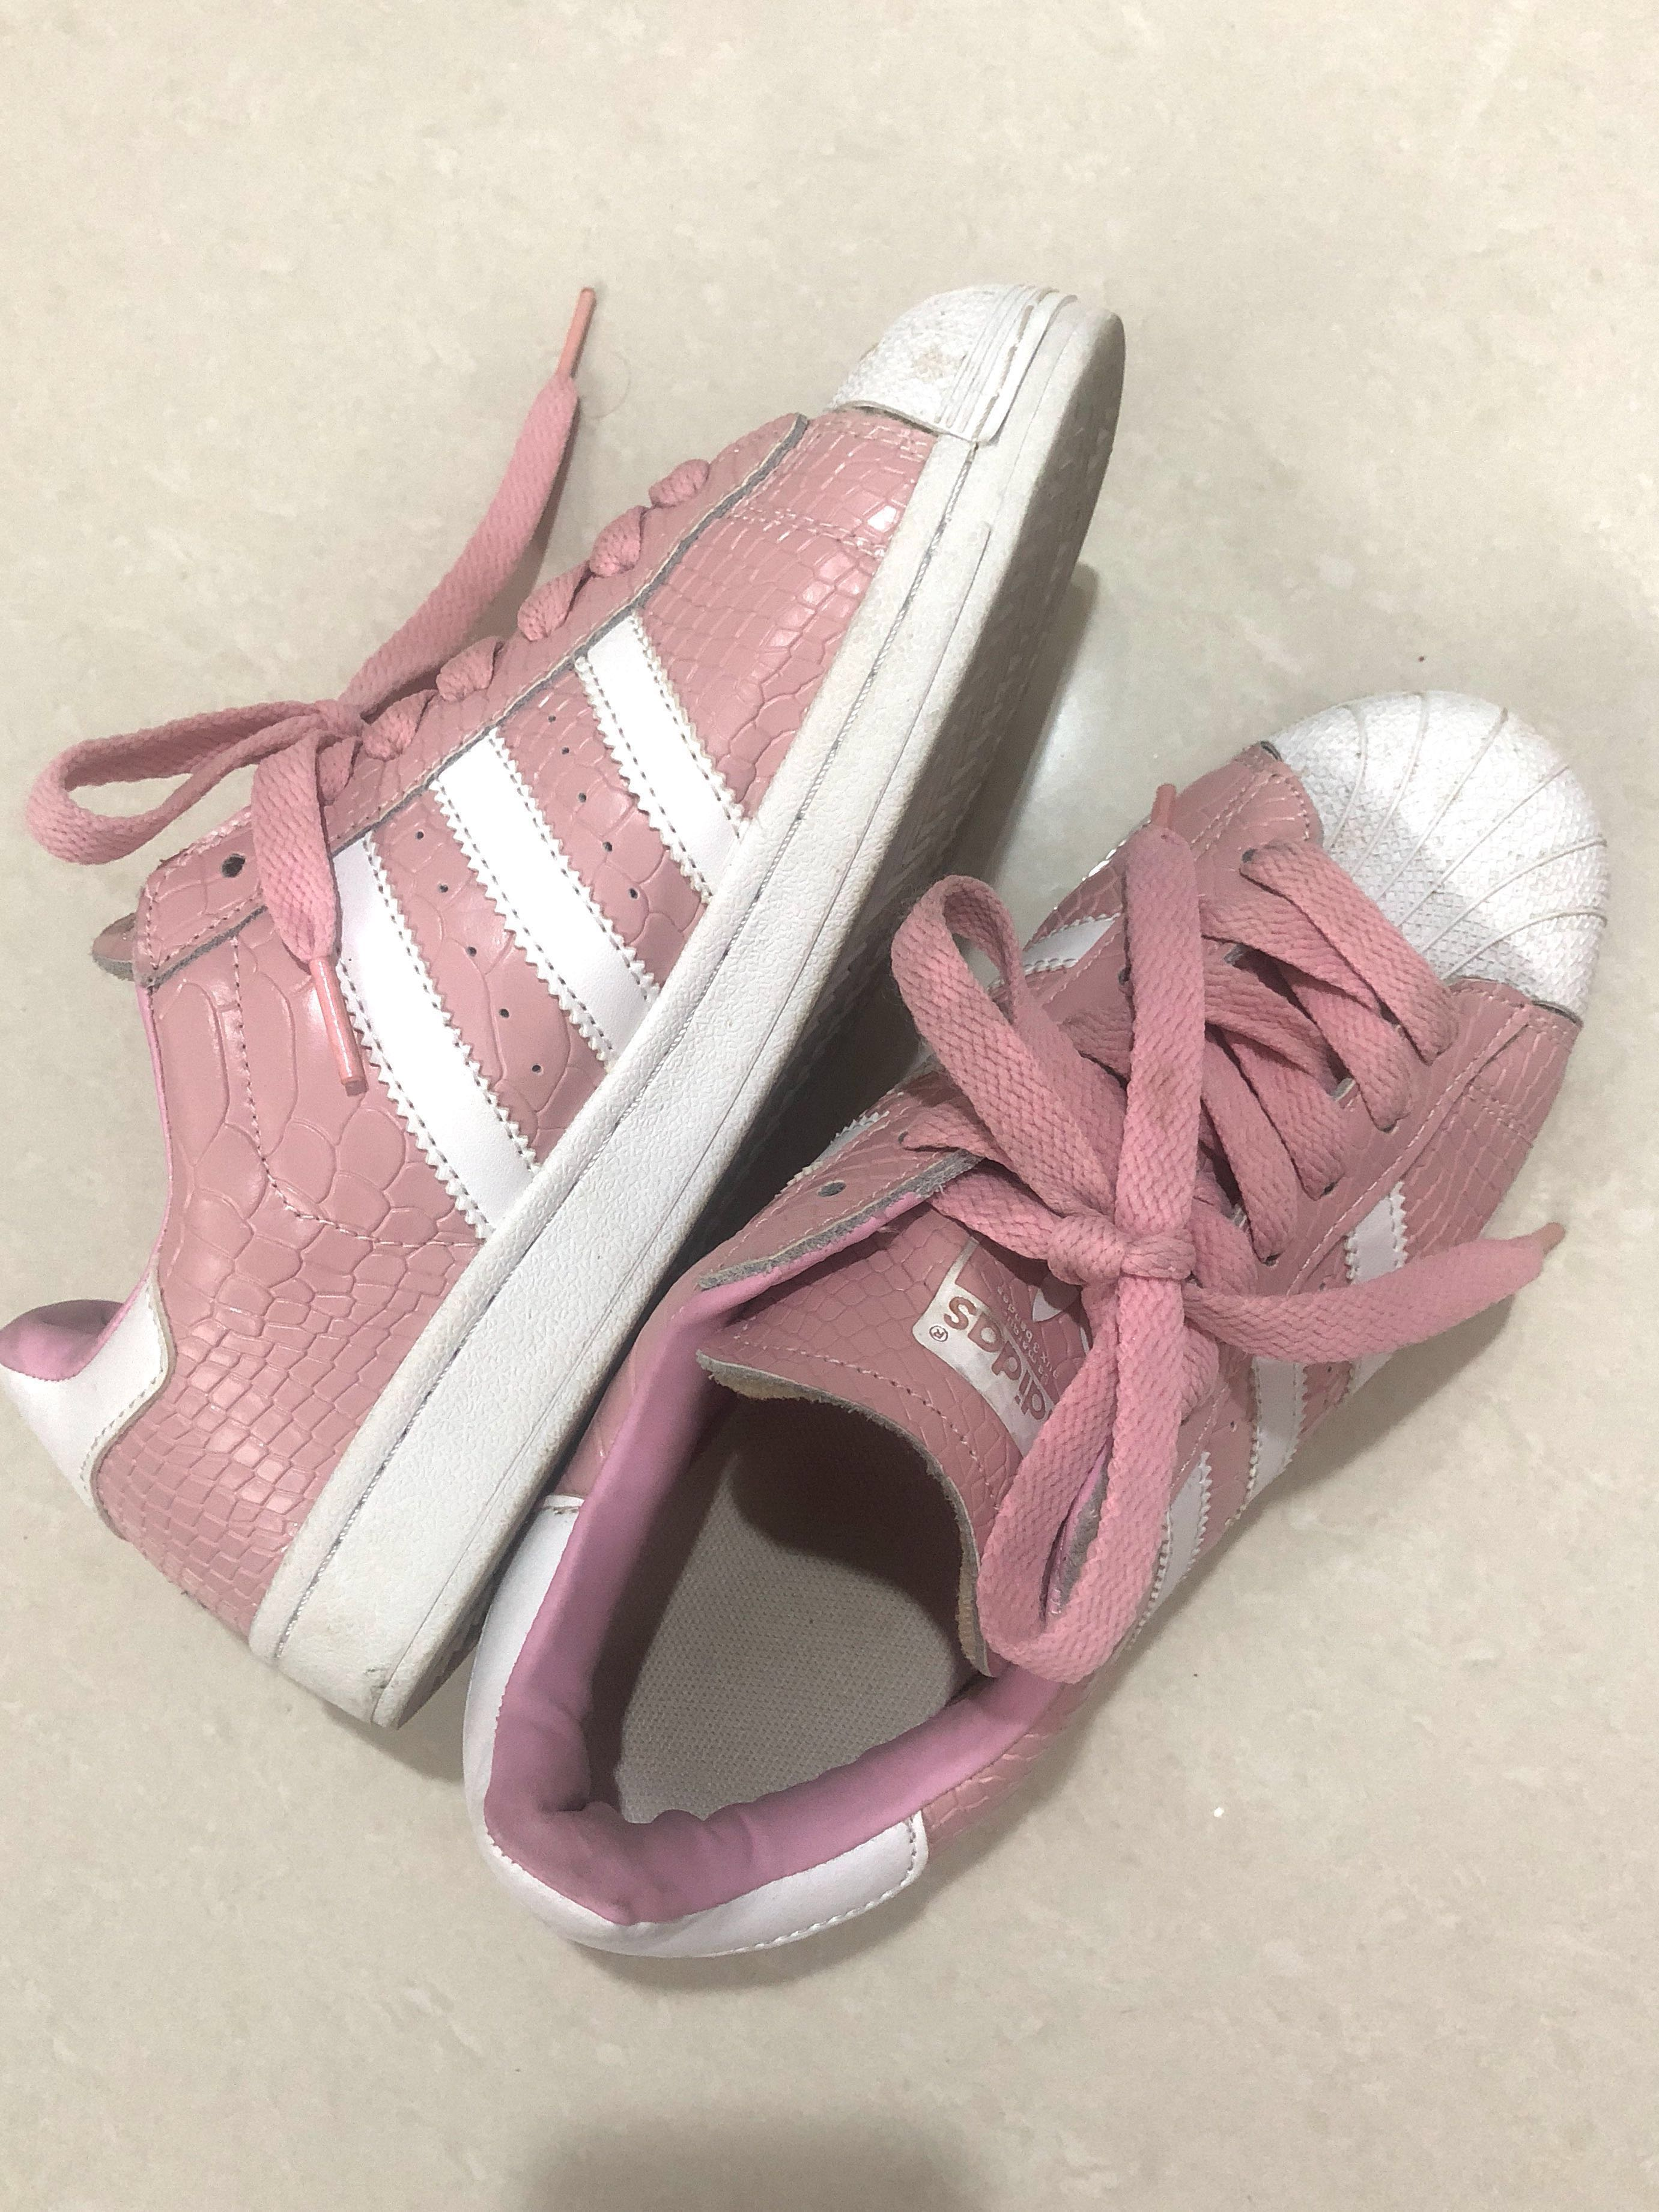 reputable site 078b0 d8acb Adidas Superstar Pink Snake Skin 1 1 Quality  SSV8, Women s Fashion, Shoes  on Carousell